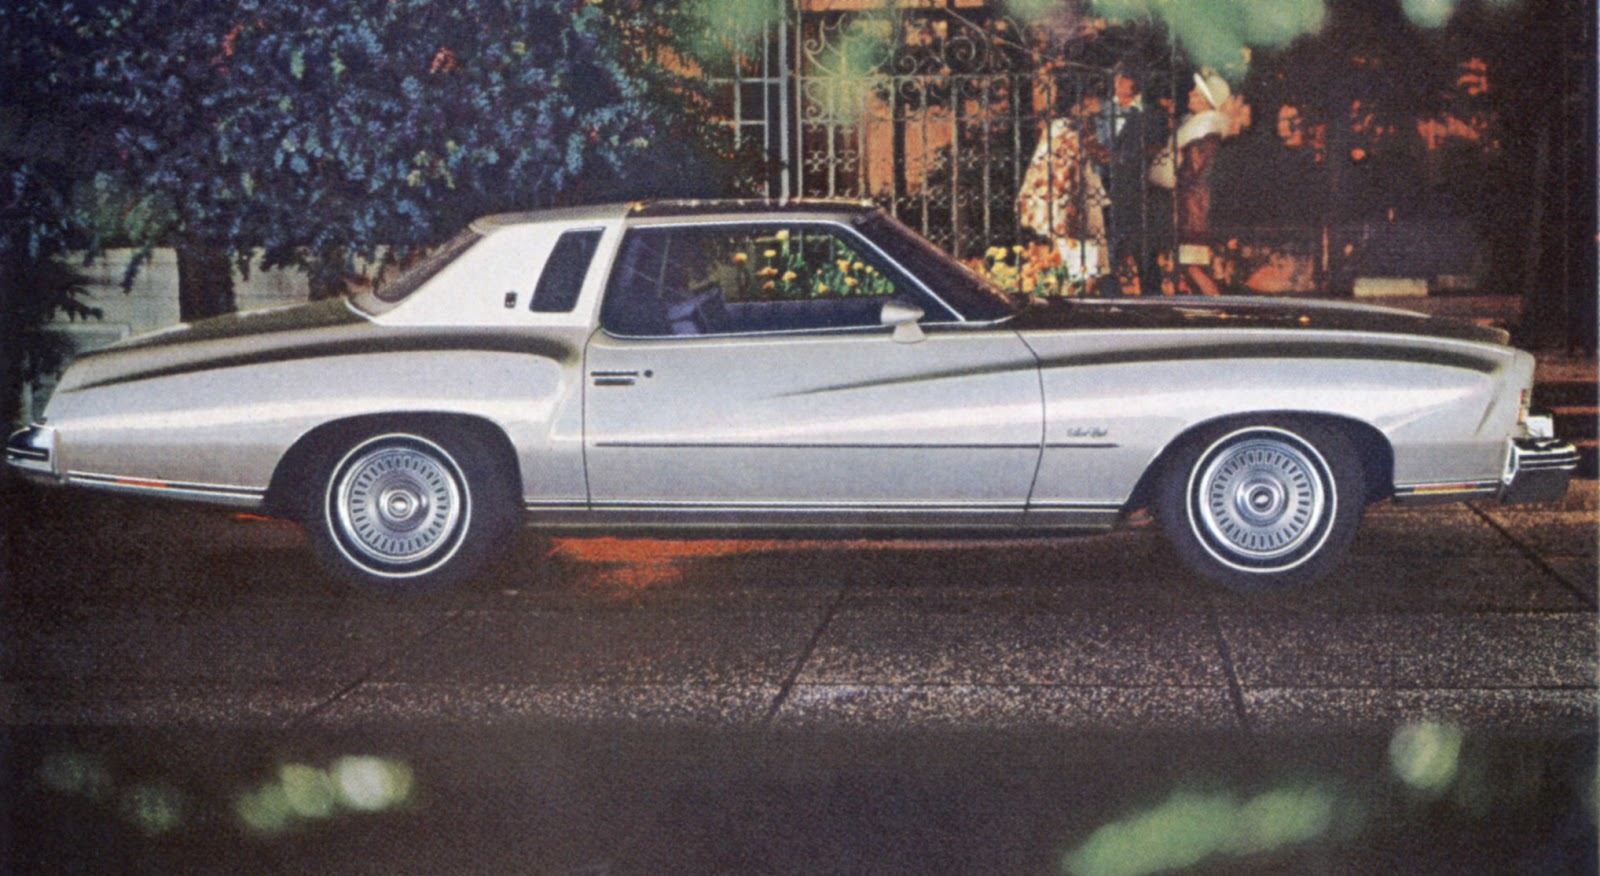 hight resolution of 1973 1977 monte carlo baroque luxury car